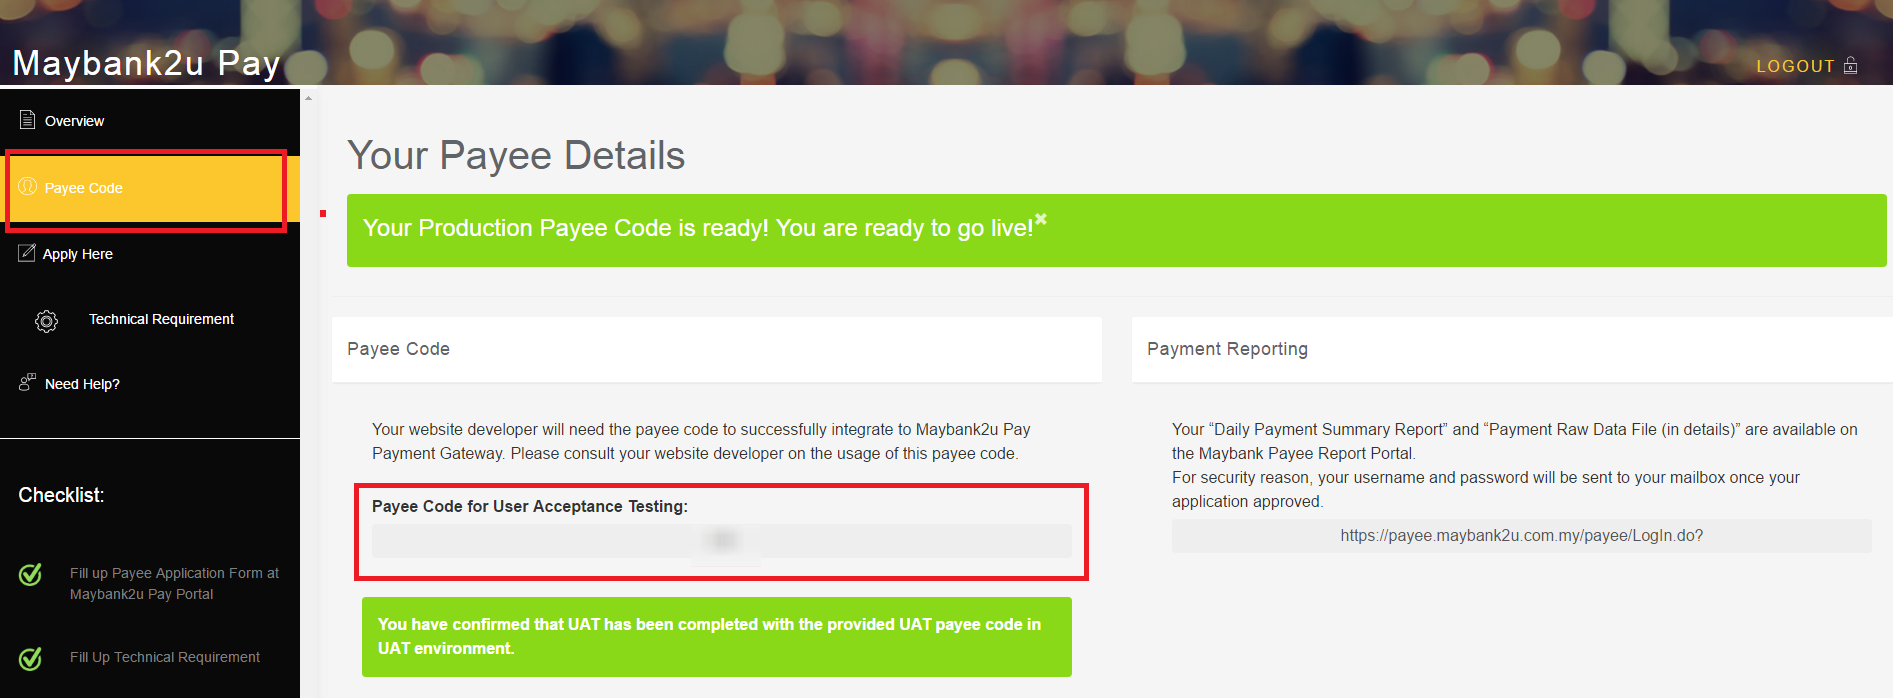 How To Set Up Maybank2u Pay In webShaper? « eCommerce store ...